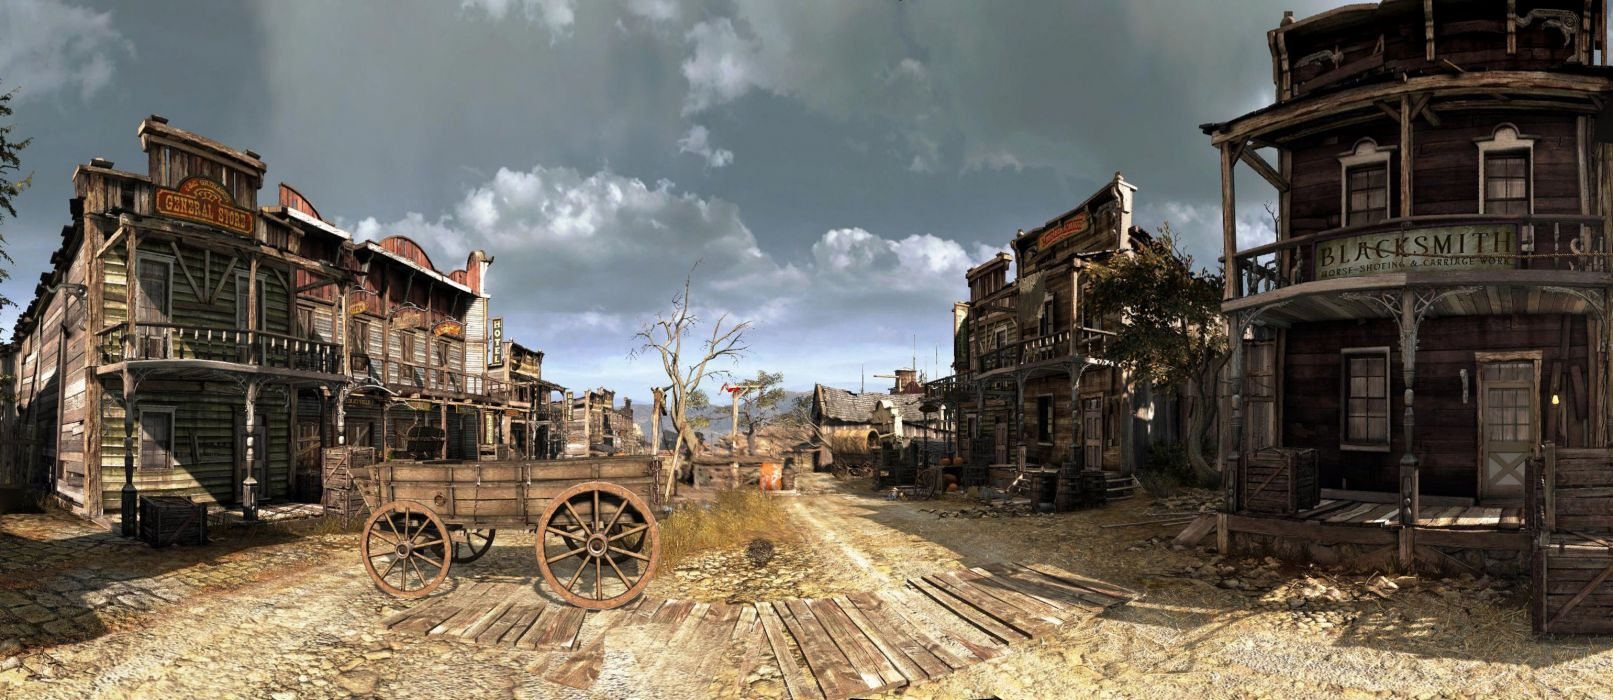 CALL OF JUAREZ action adventure western (58) wallpaper